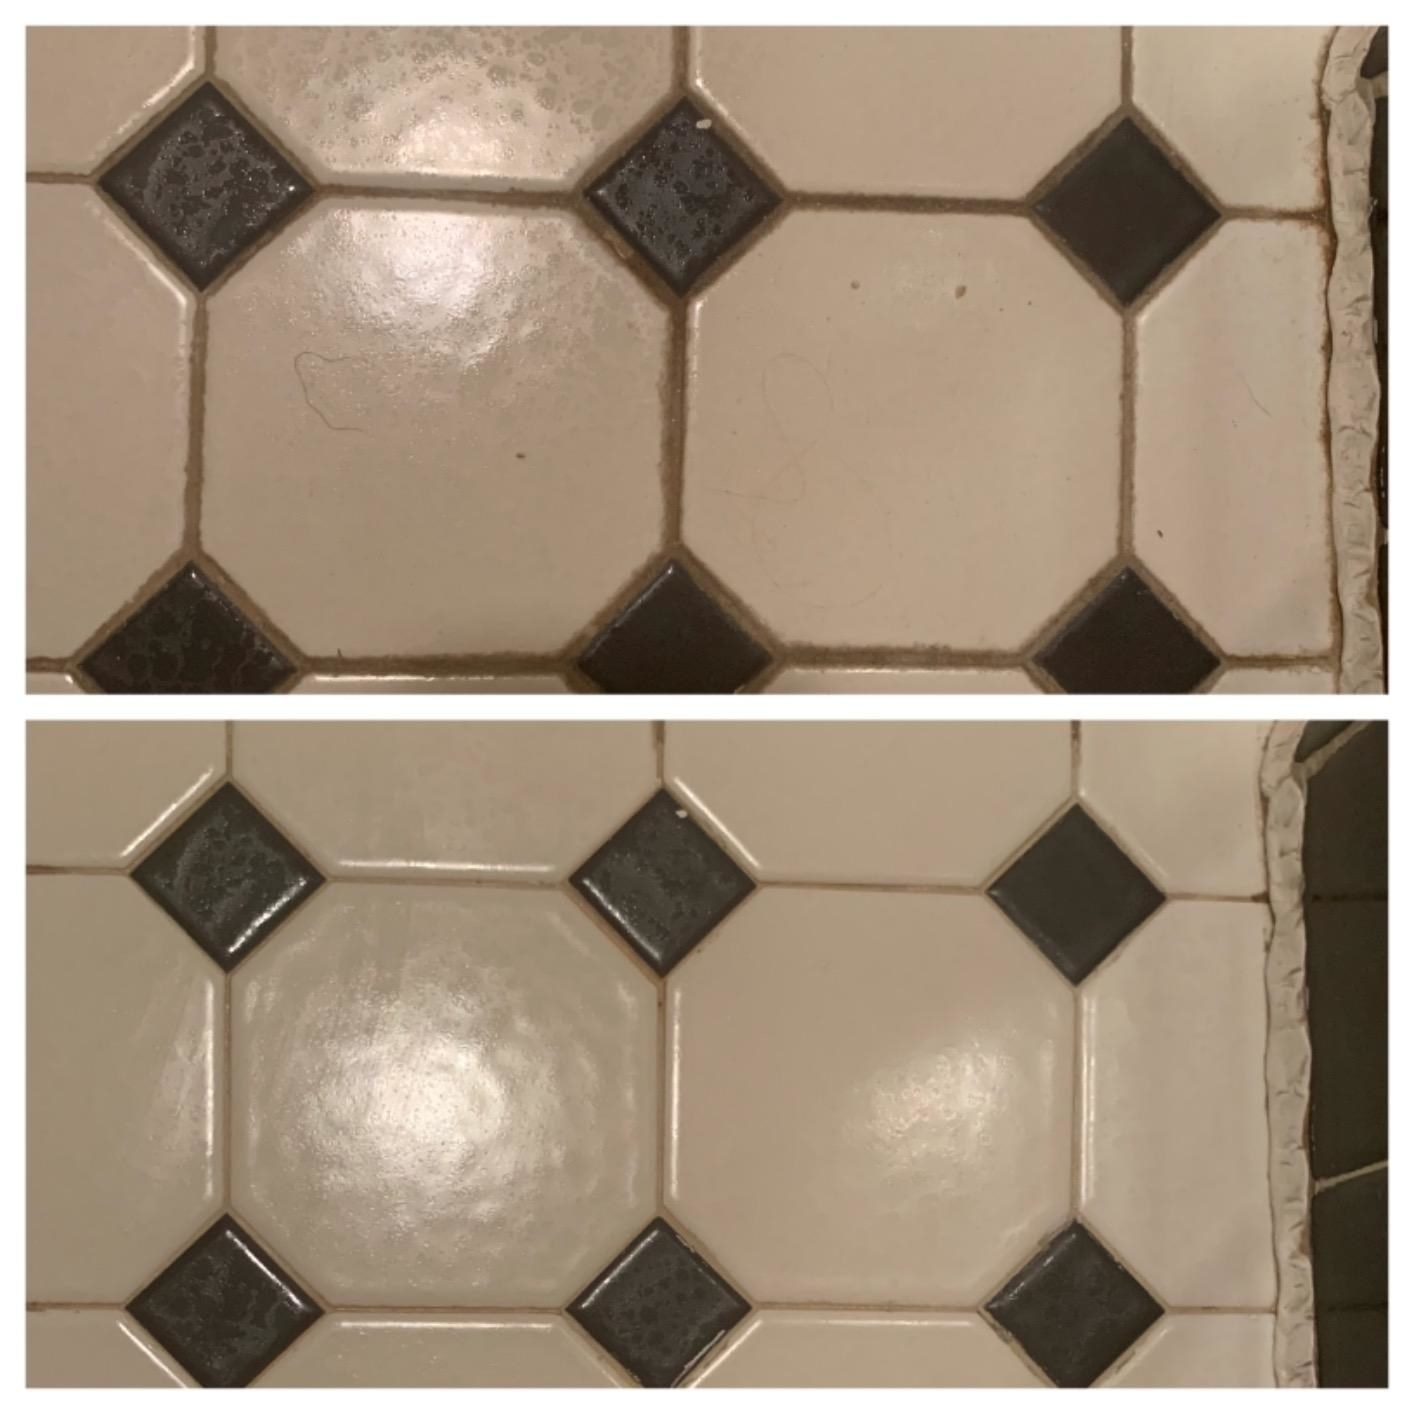 A before and after of tile with dirty grout, and tile with the grout cleaned